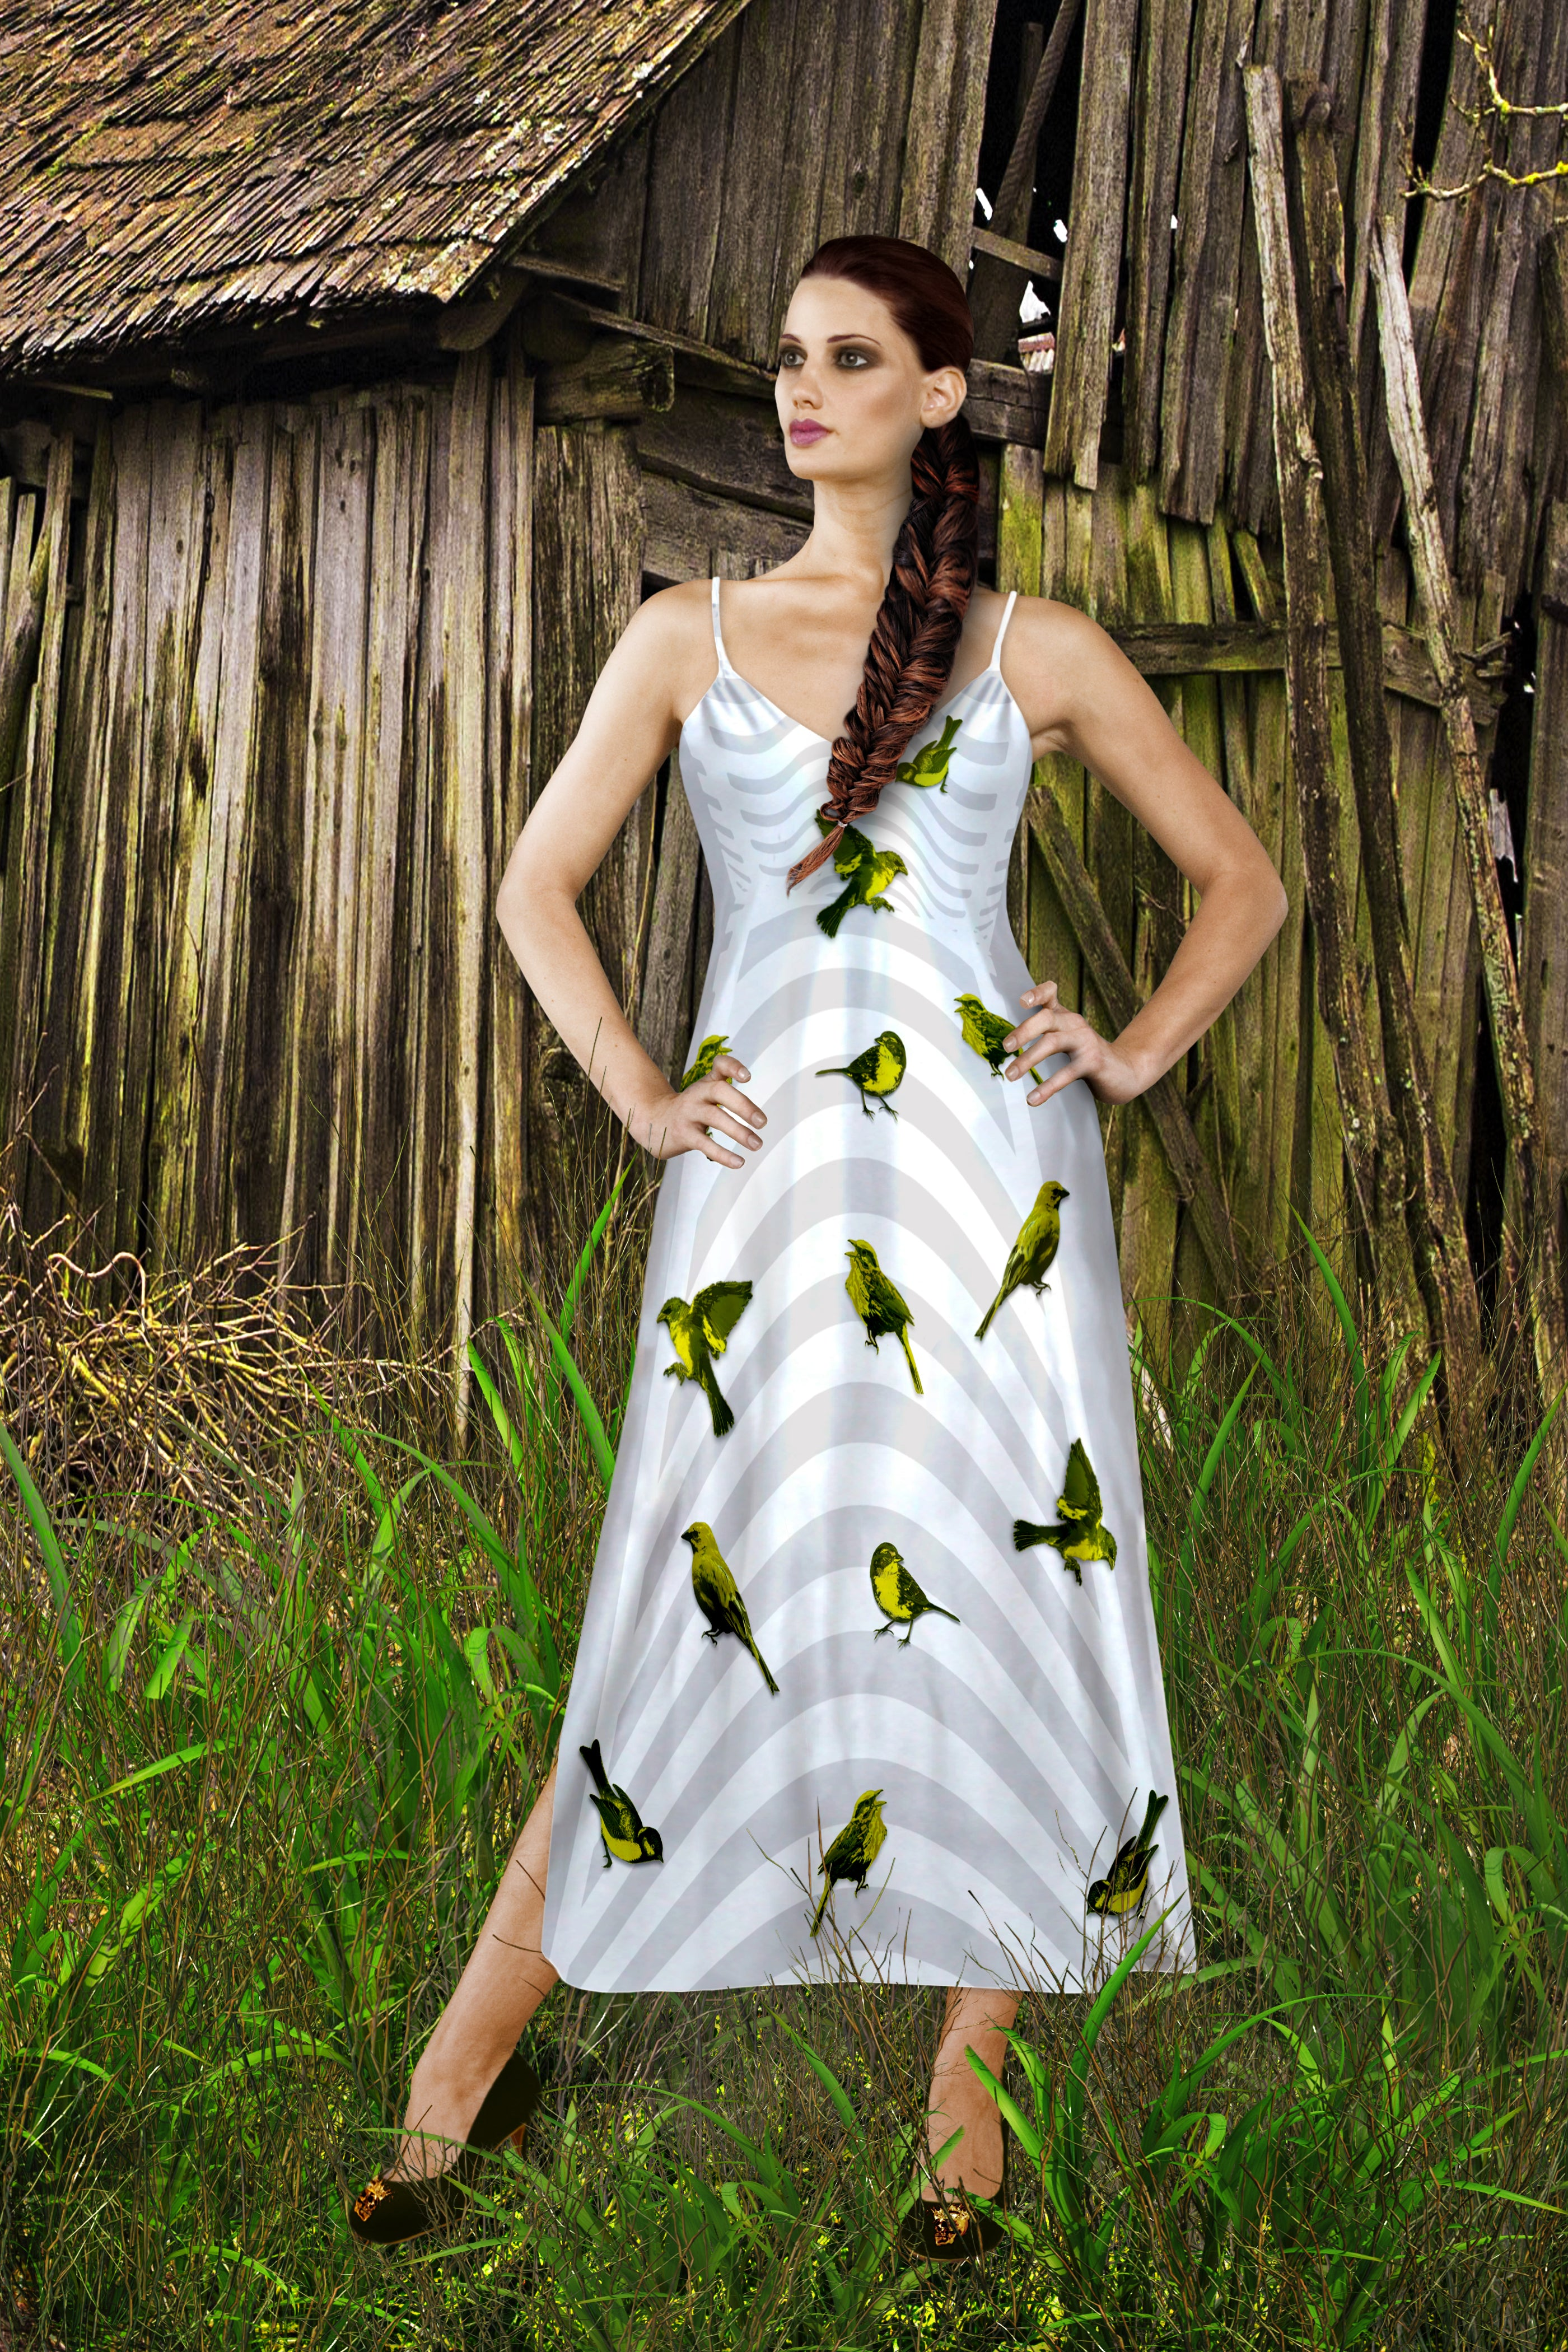 V Neck Slip Dress in Gray Birdcage Pattern with Green Sparrows- White